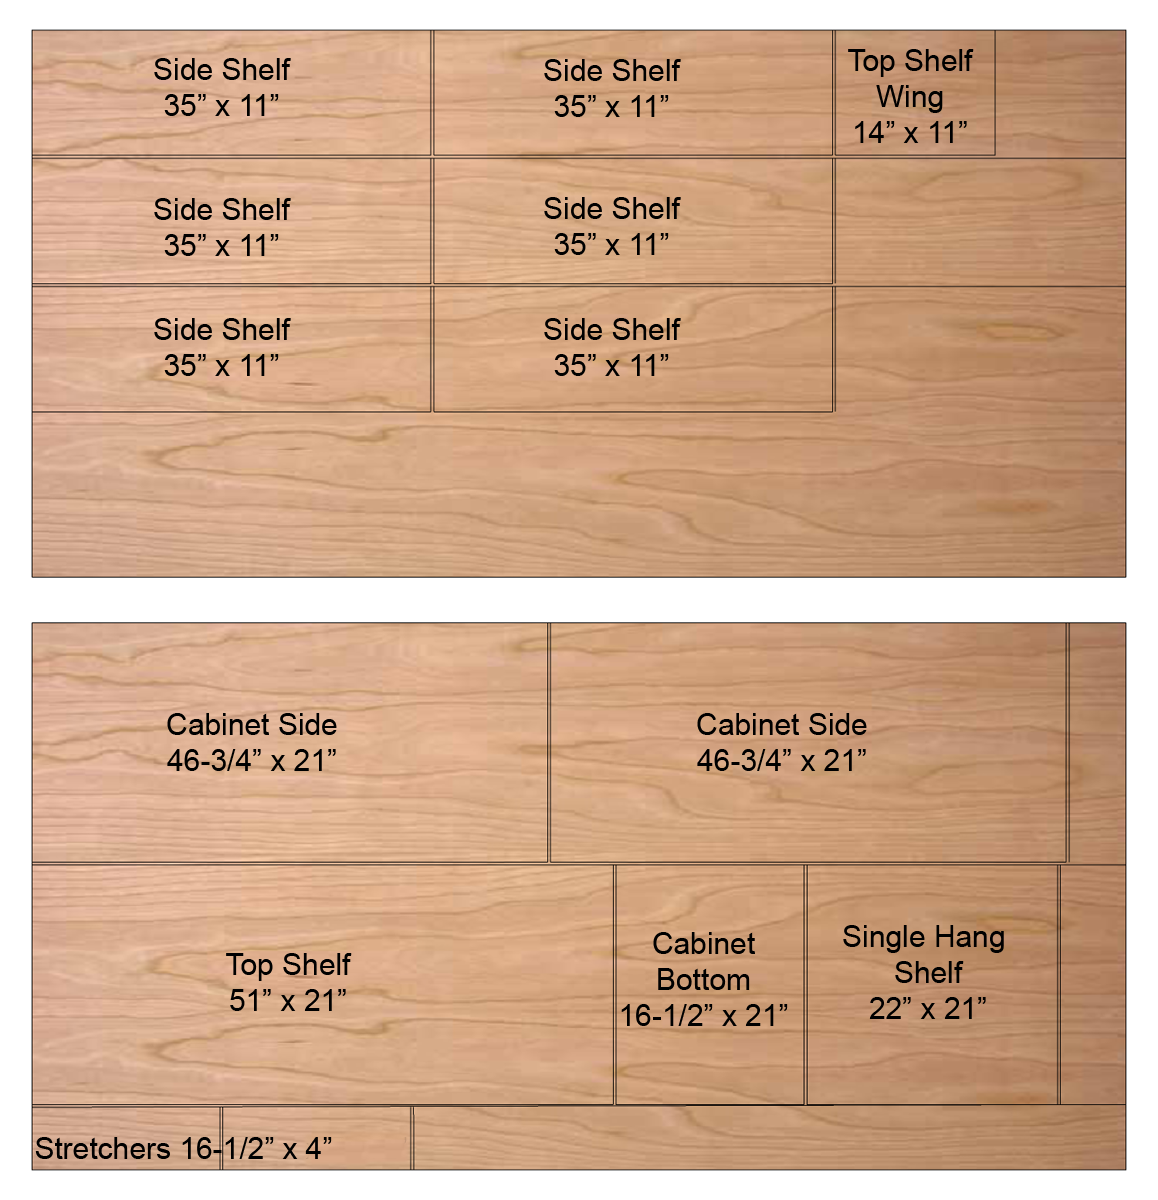 home depot maple plywood 34 with Step In Closet Organizer Plans on Wolfhudsonpaintedantiquewhite Db36 together with Jsiquincycherry B21 likewise Wolfsaginawchestnut Db24 in addition 1 34 X 1 34 Cherry Lumber 2x2 P3873 in addition Diy Entertainment Centers Ideas.